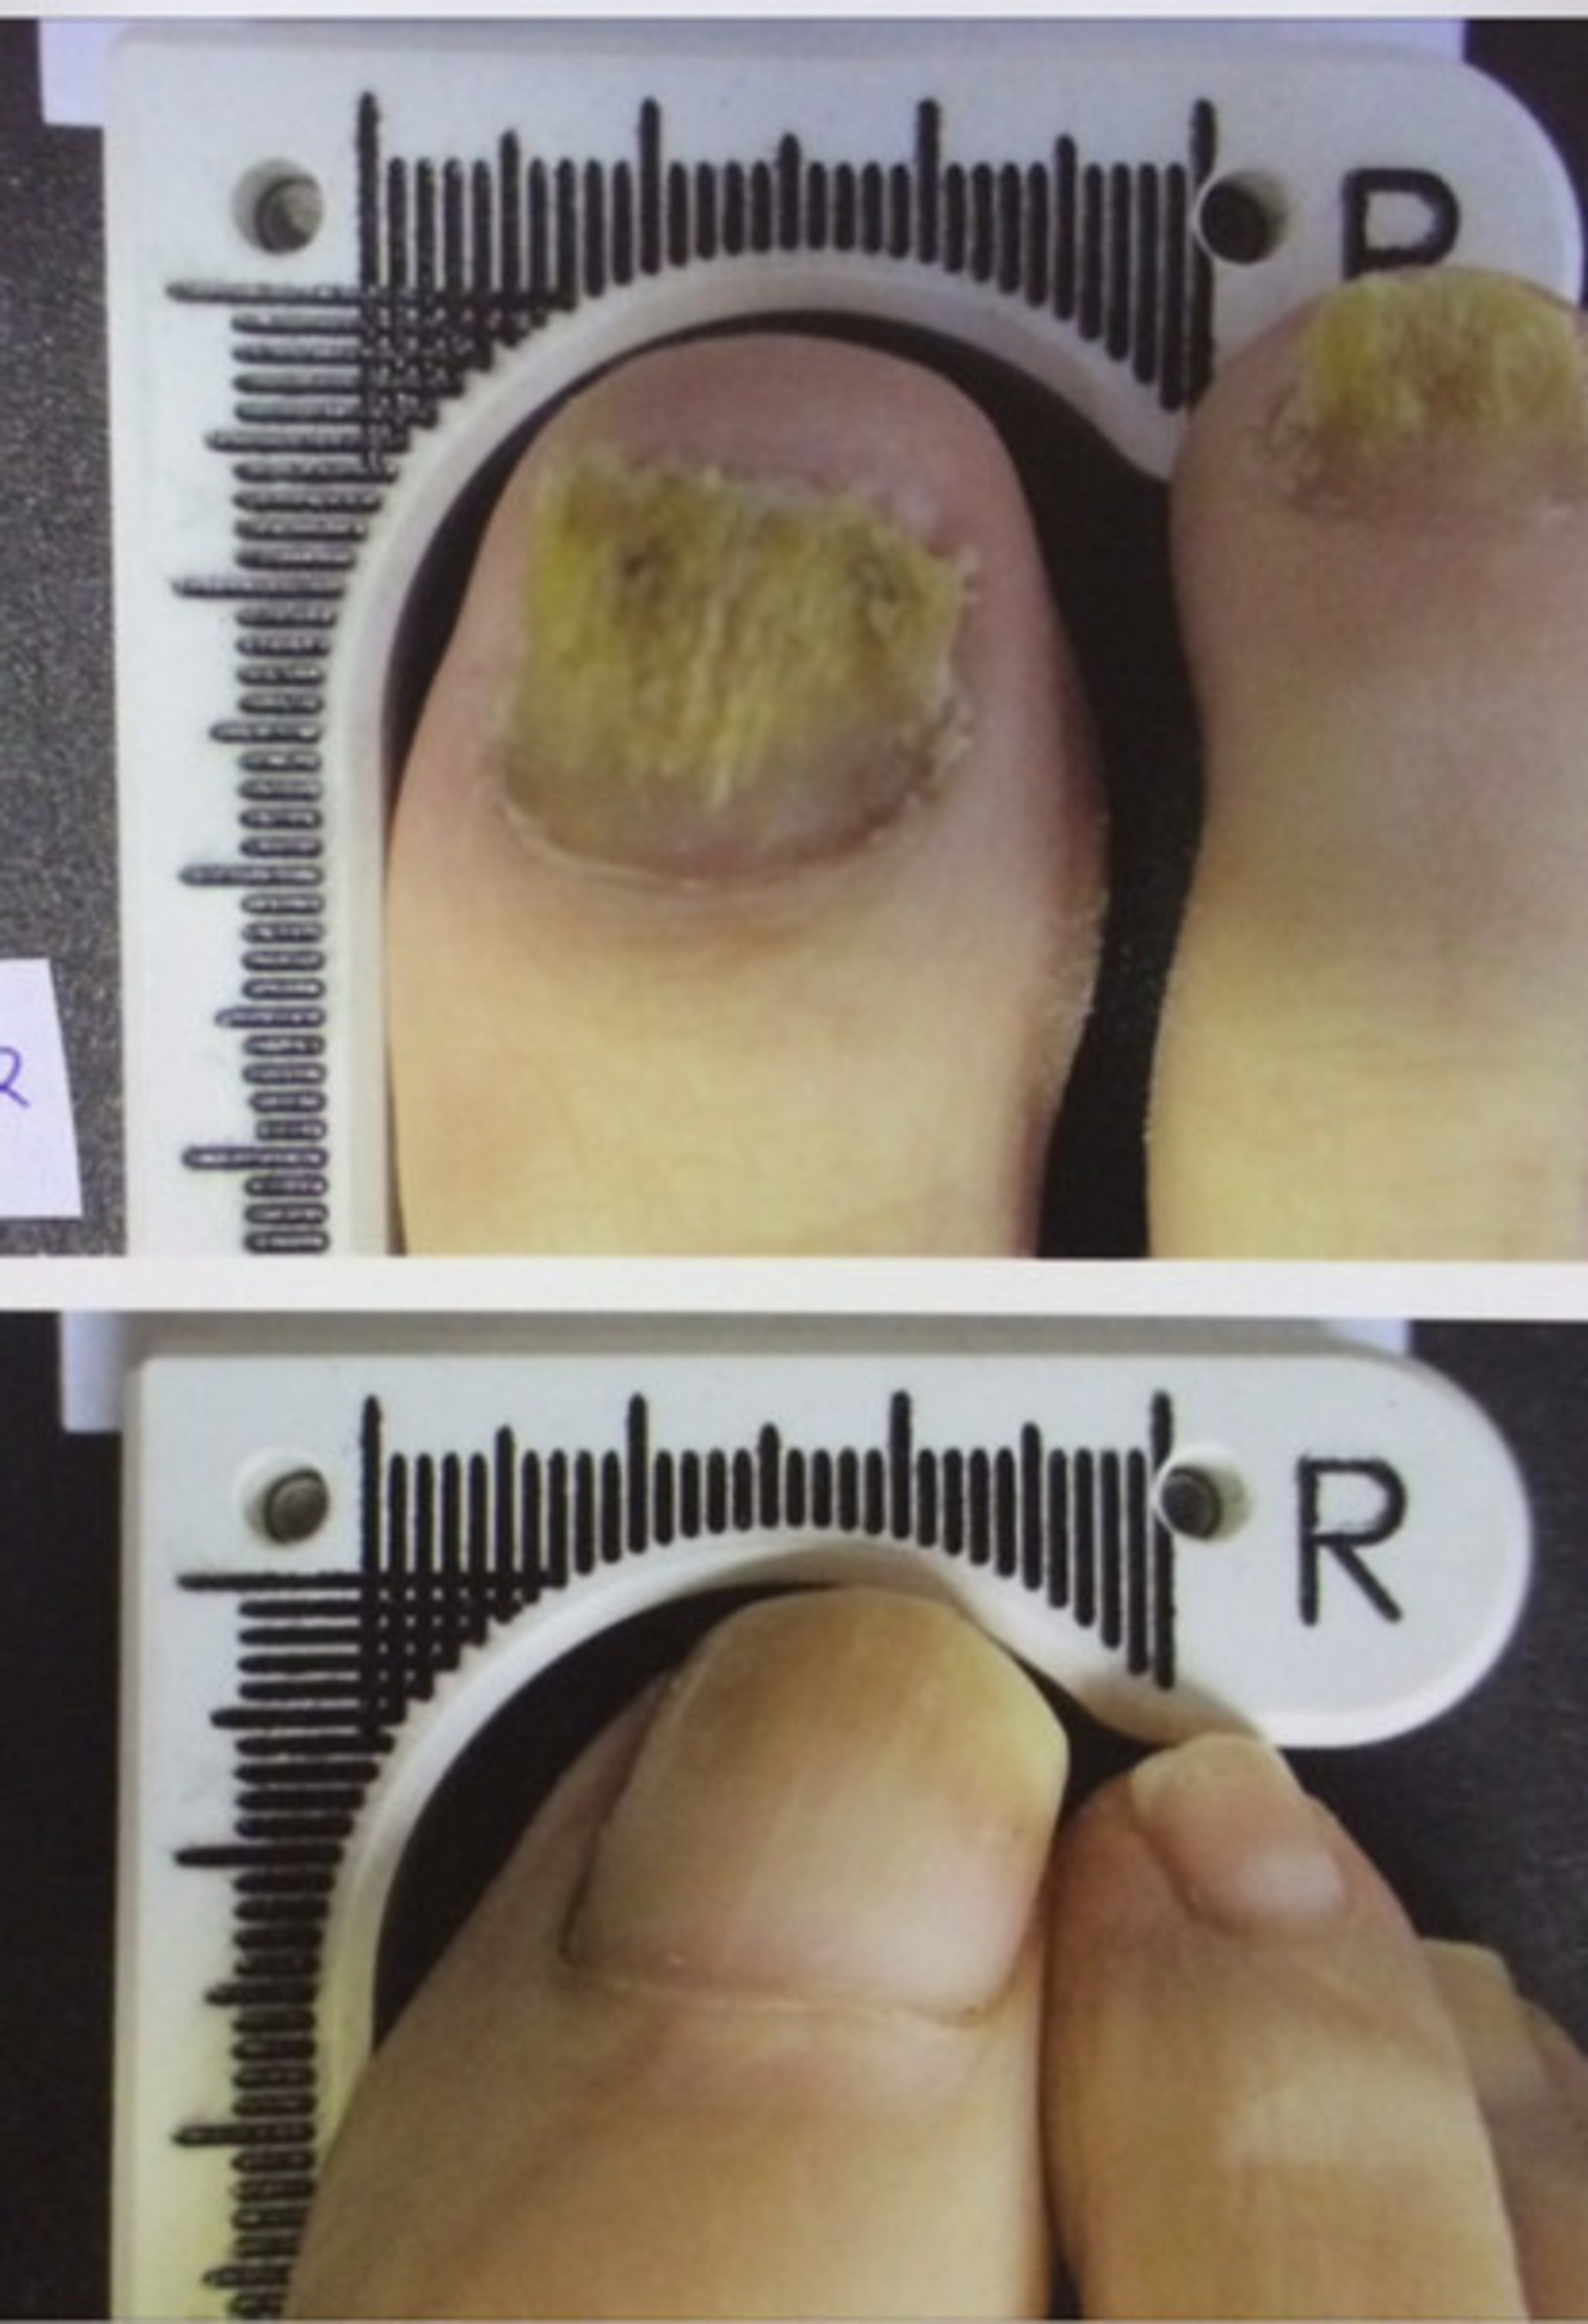 Nail Fungus Sufferers Find Relief In New Laser Treatment